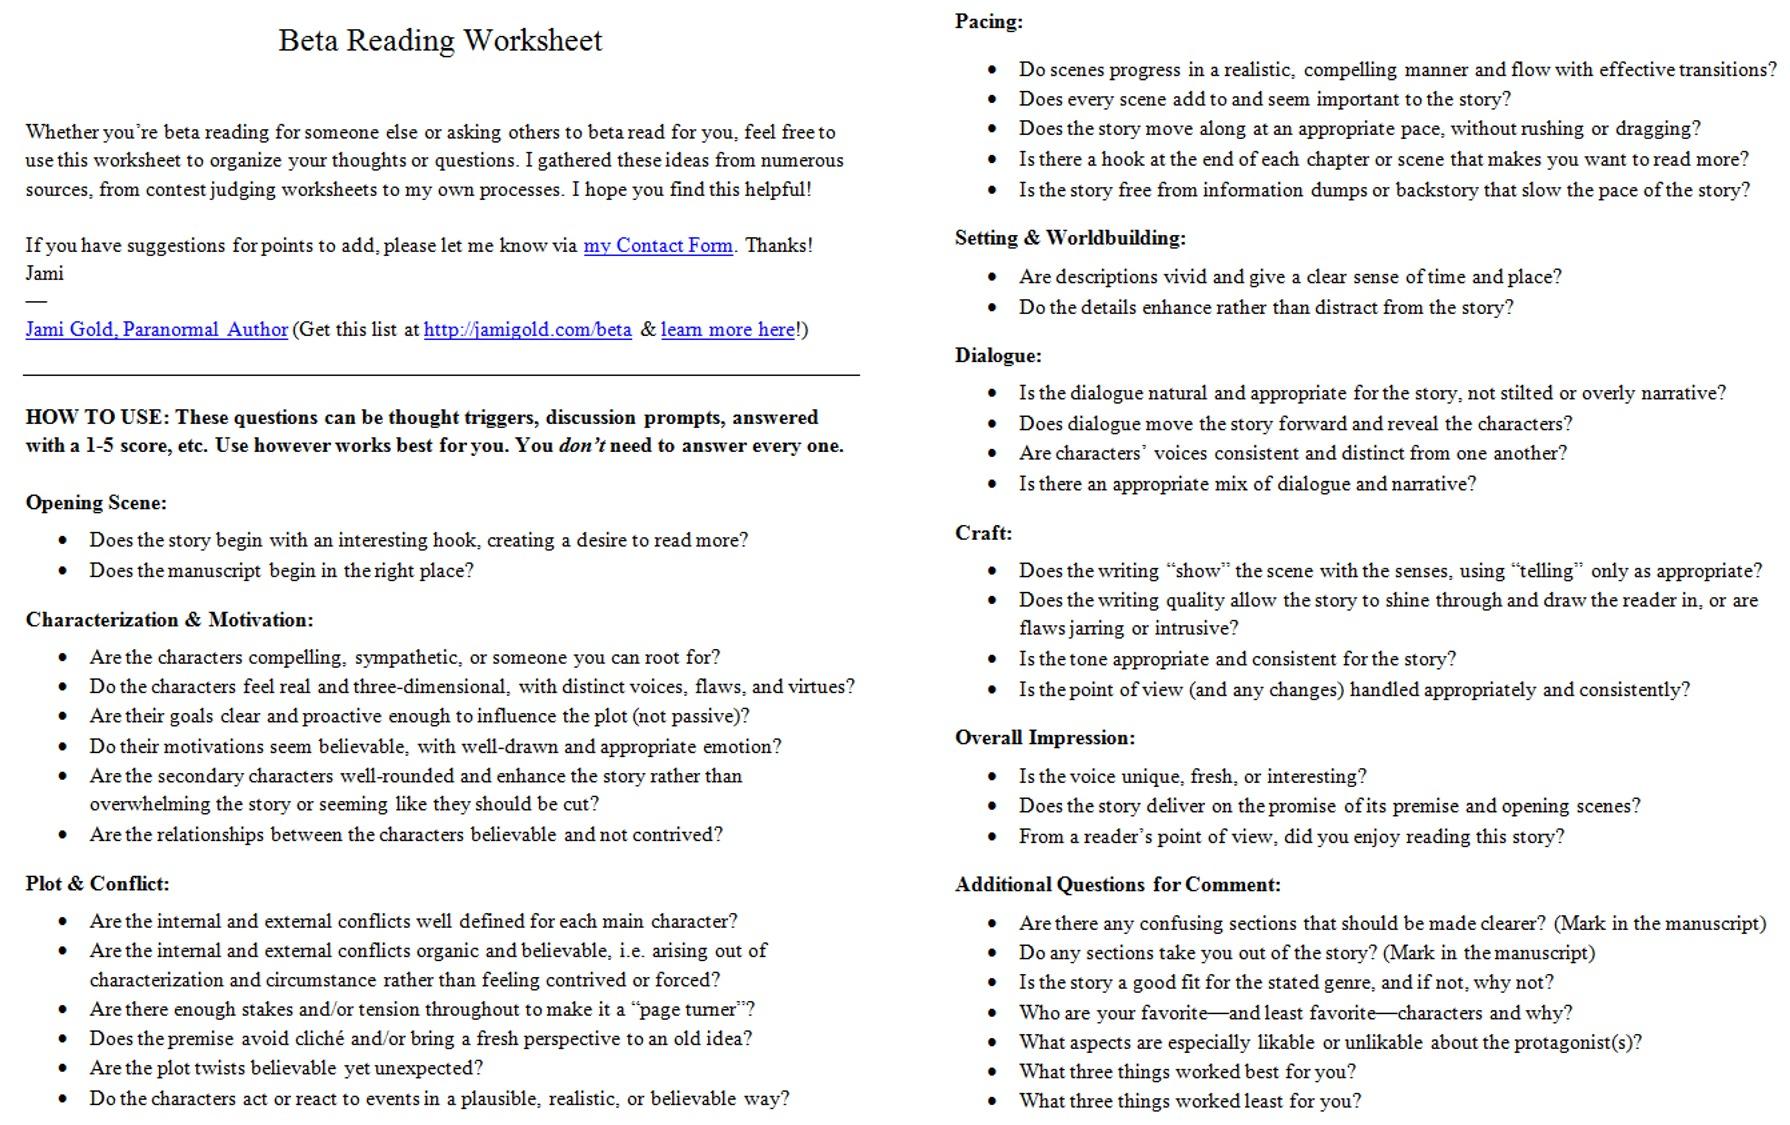 Weirdmailus  Seductive Worksheets For Writers  Jami Gold Paranormal Author With Fascinating Screen Shot Of The Twopage Beta Reading Worksheet With Alluring Periodic Trends Worksheets Also Algebraic Equations Worksheets With Answers In Addition Adding To Ten Worksheets And Label Cell Parts Worksheet As Well As Letter K Printable Worksheets Additionally Ekm Worksheet From Jamigoldcom With Weirdmailus  Fascinating Worksheets For Writers  Jami Gold Paranormal Author With Alluring Screen Shot Of The Twopage Beta Reading Worksheet And Seductive Periodic Trends Worksheets Also Algebraic Equations Worksheets With Answers In Addition Adding To Ten Worksheets From Jamigoldcom